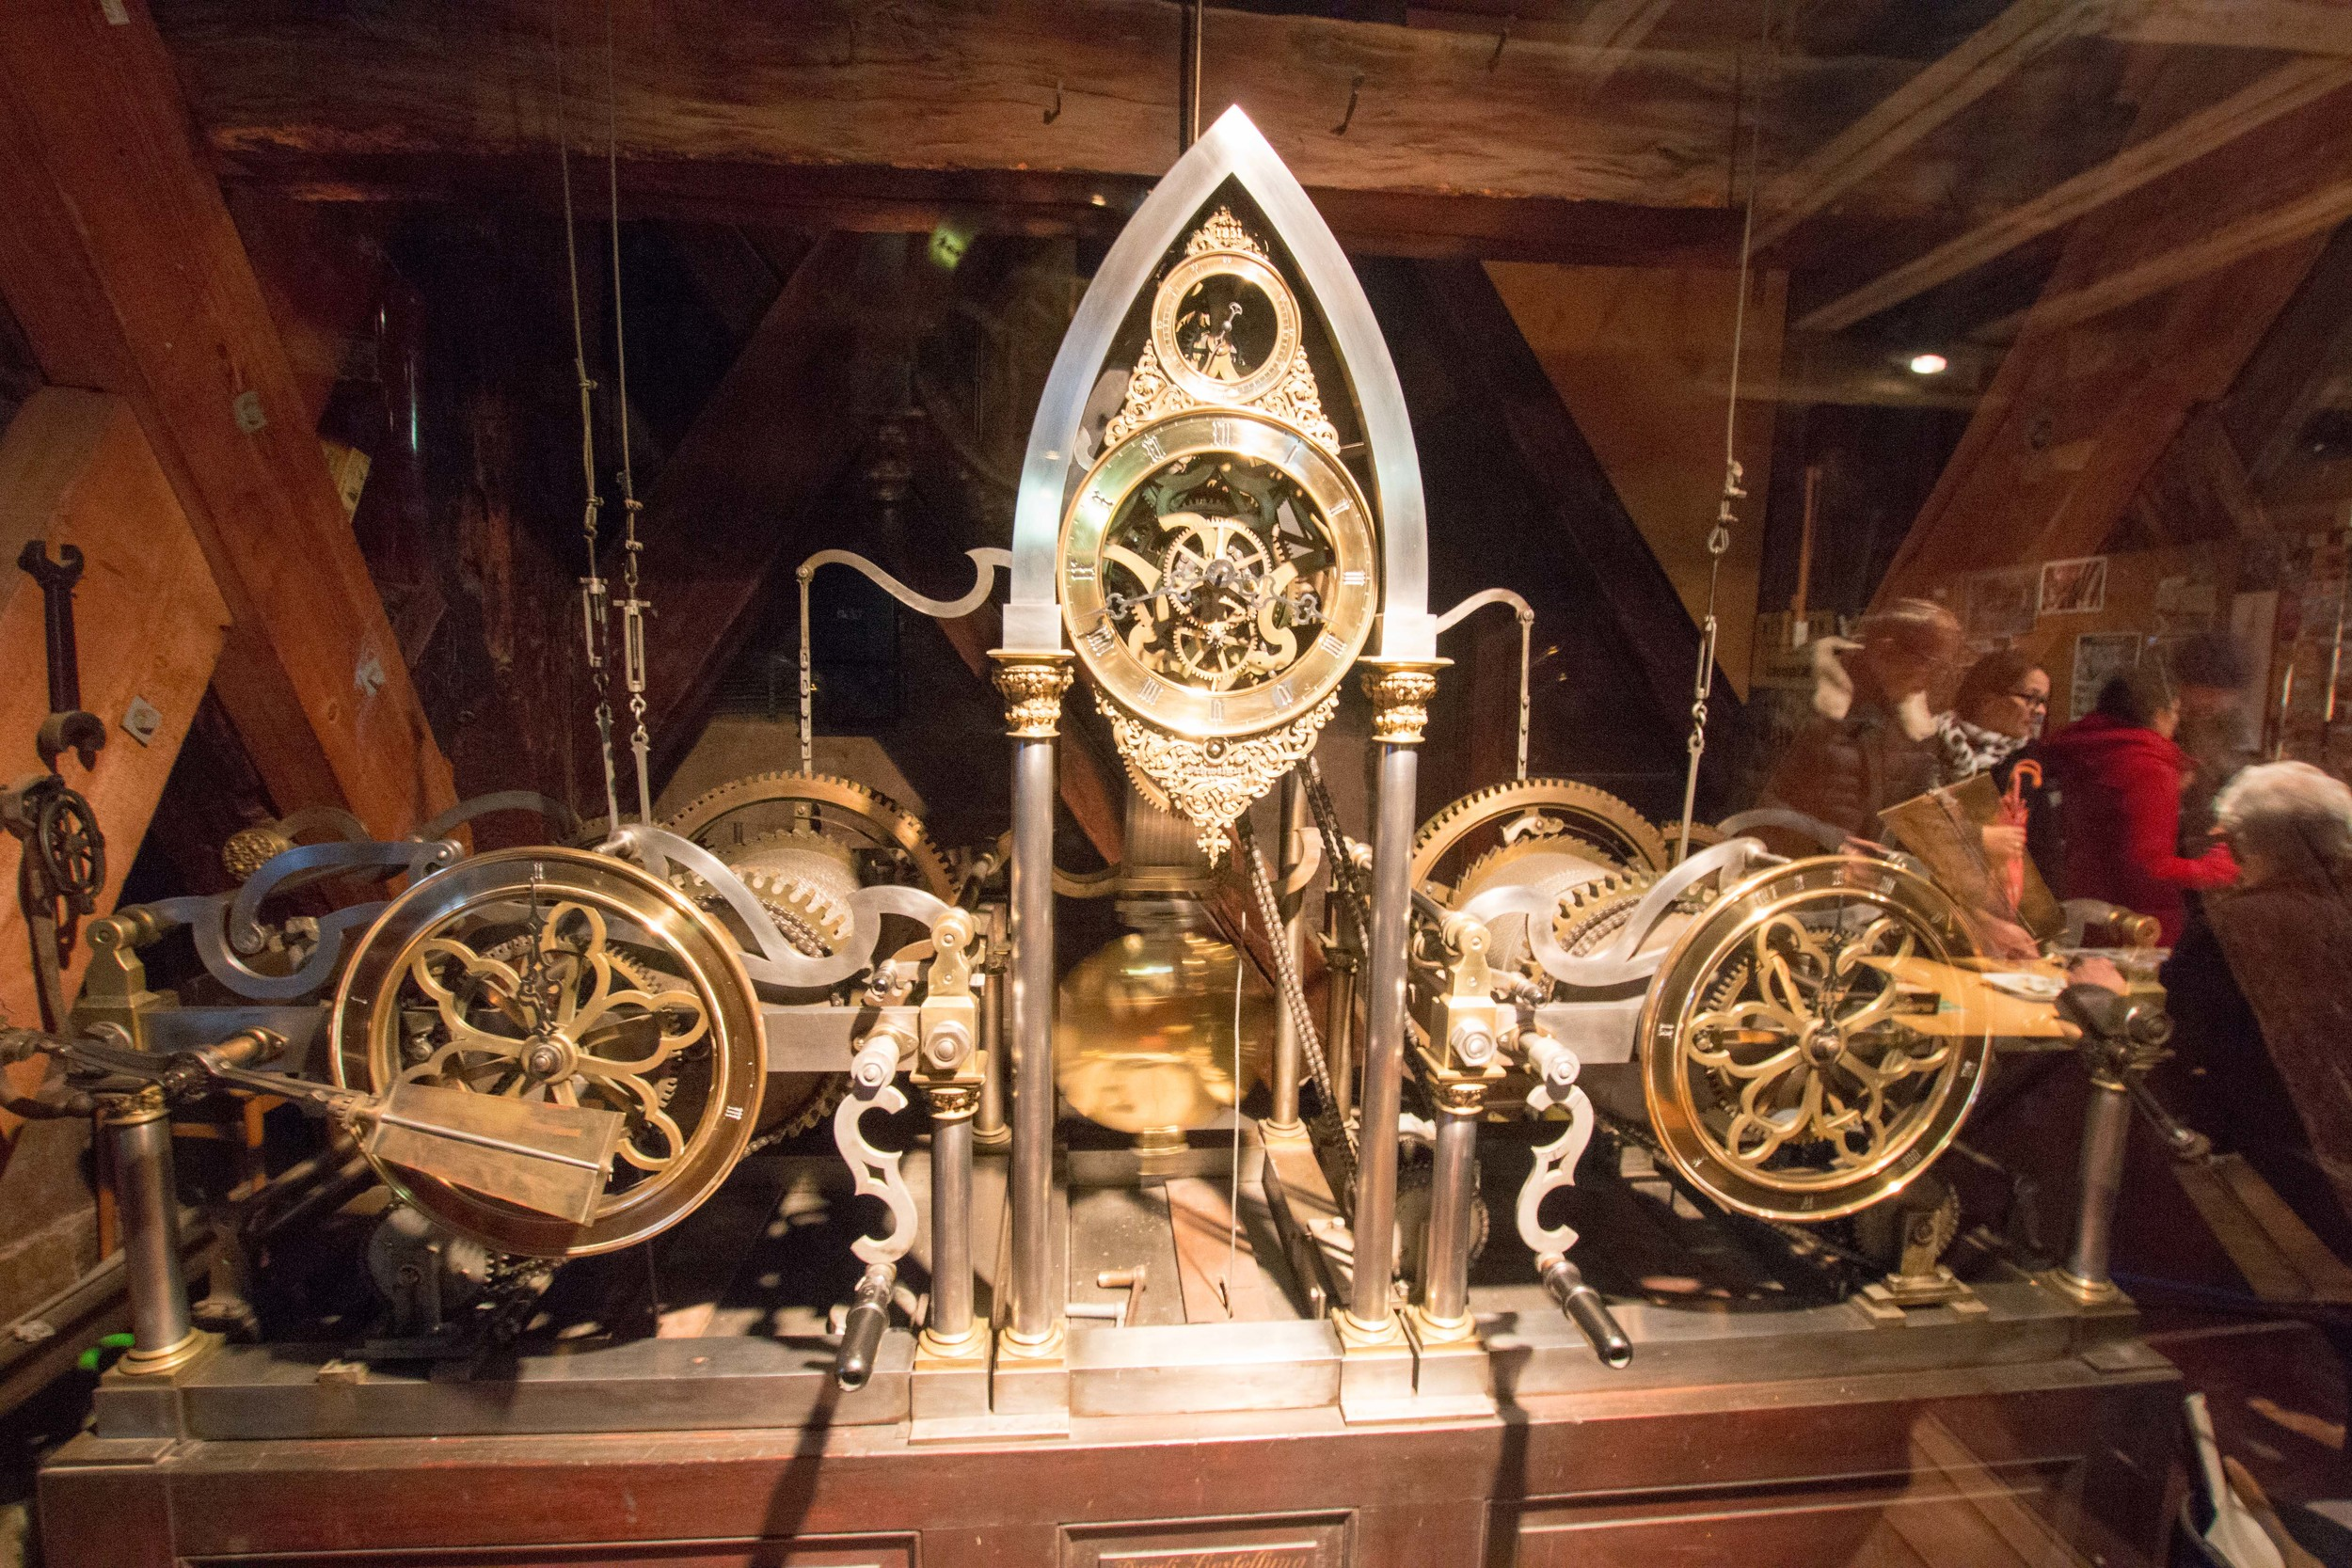 Clock mechanism that controlled the bells in the bell tower.